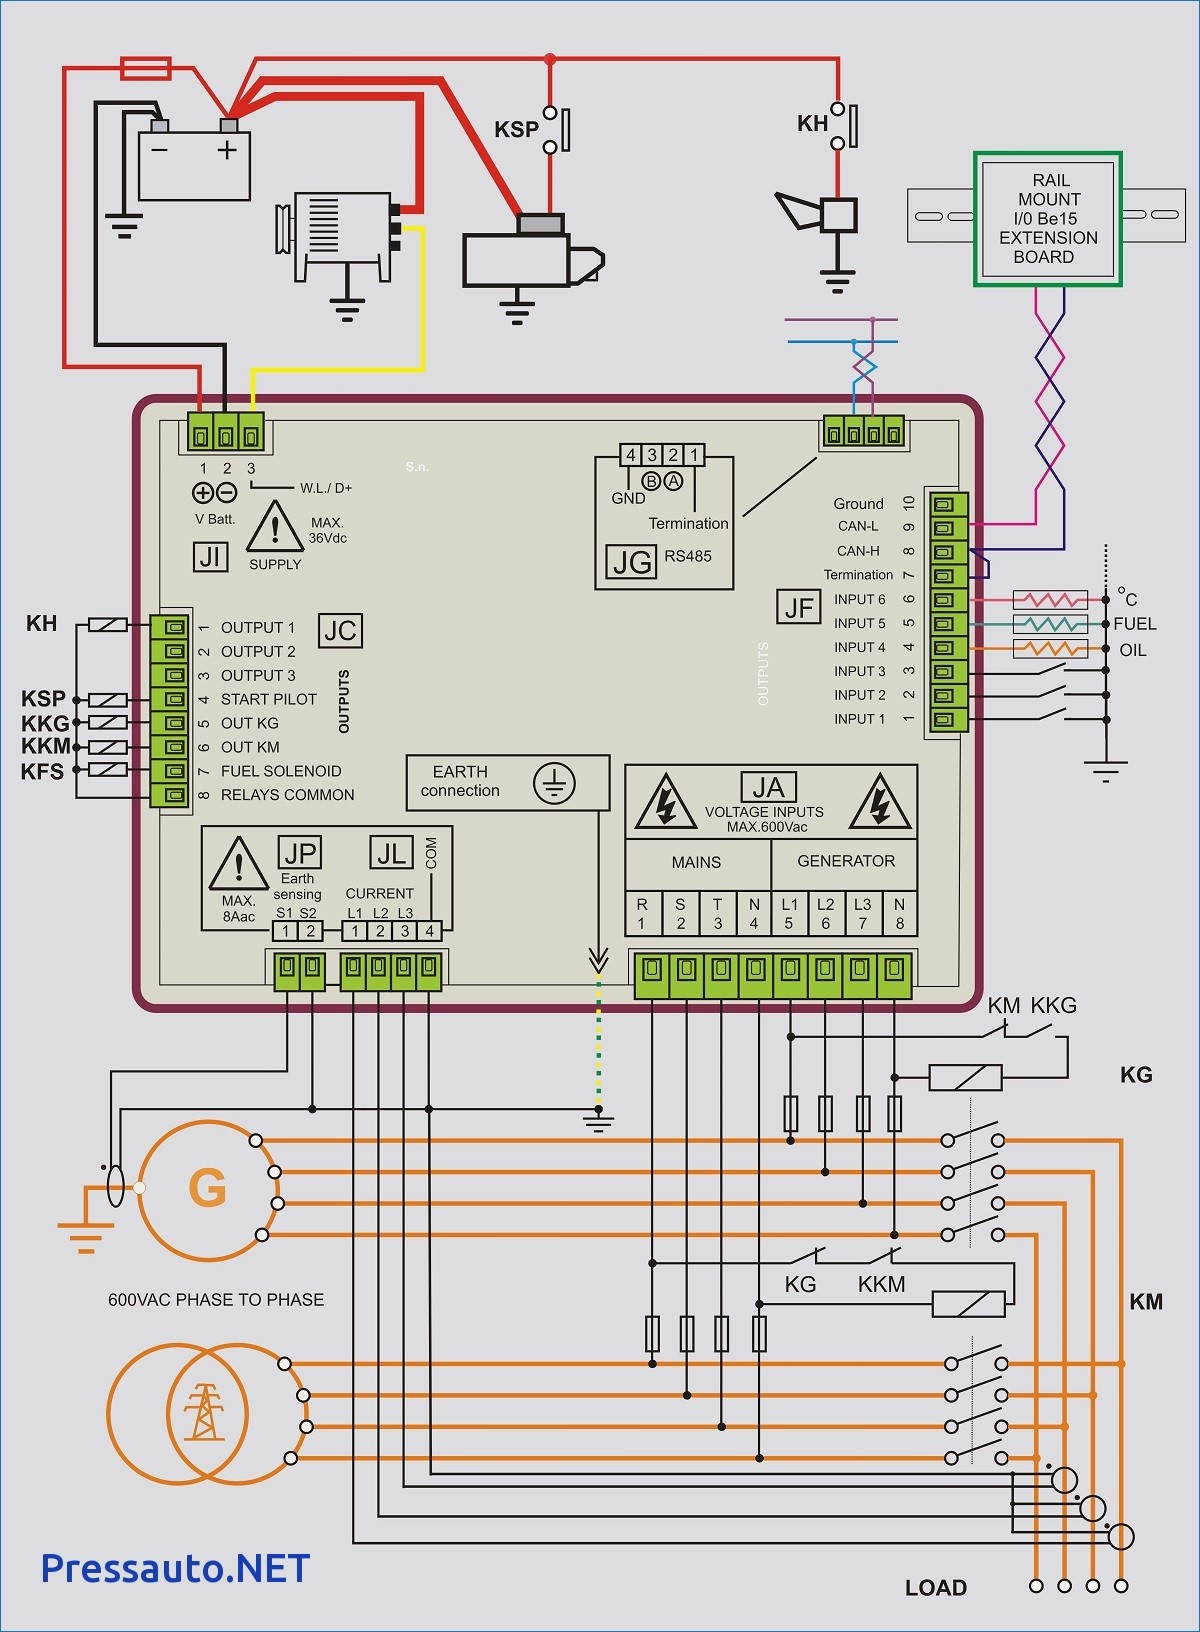 Reliance Transfer Switch Wiring Diagram Wiring Diagram for A Generator Transfer Switch Free Downloads Wiring Of Reliance Transfer Switch Wiring Diagram